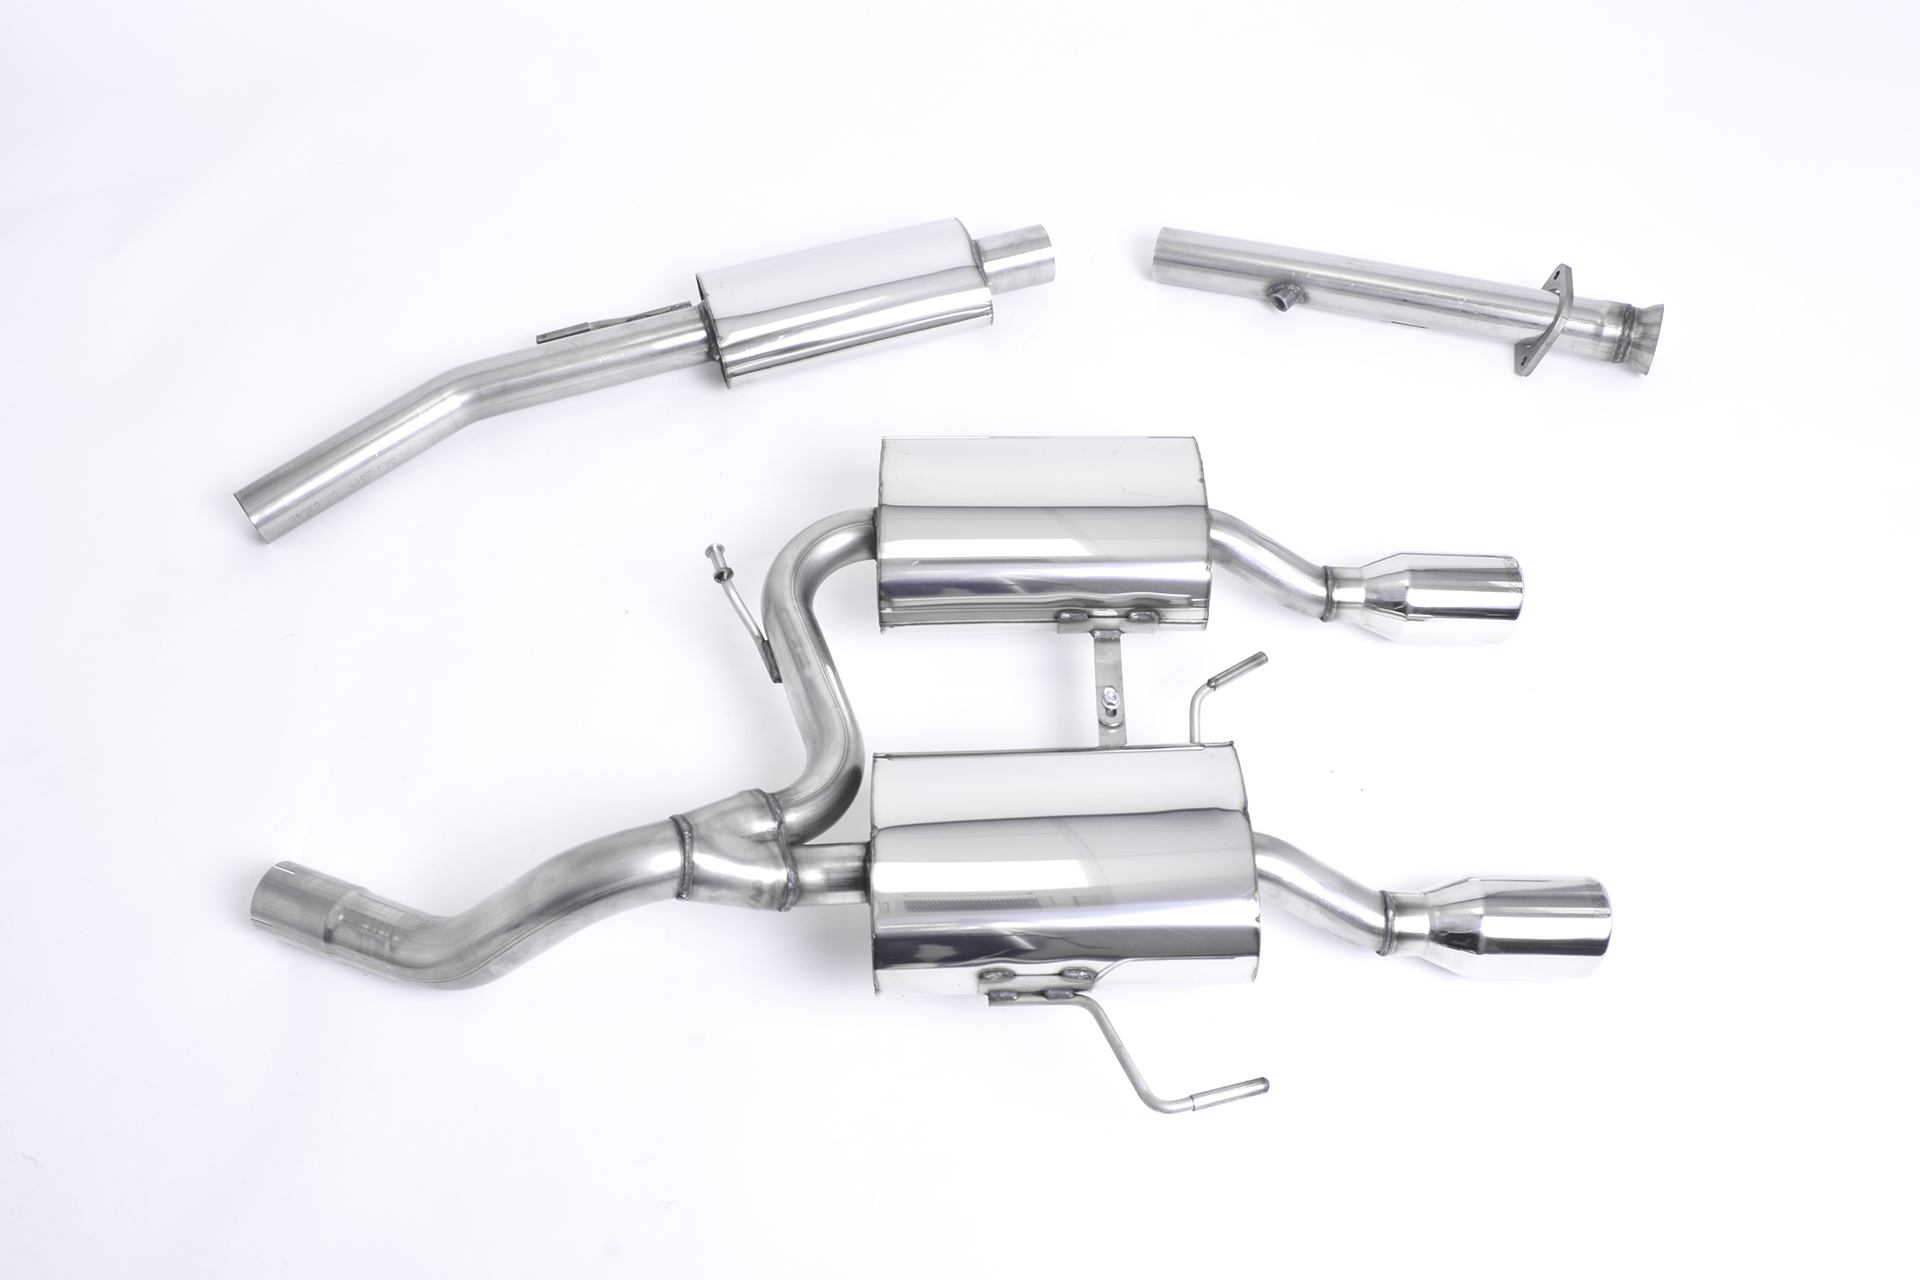 Milltek Renault Clio 182 2.0 16v Full System (including Cat Replacement Pipe) CSSRN202